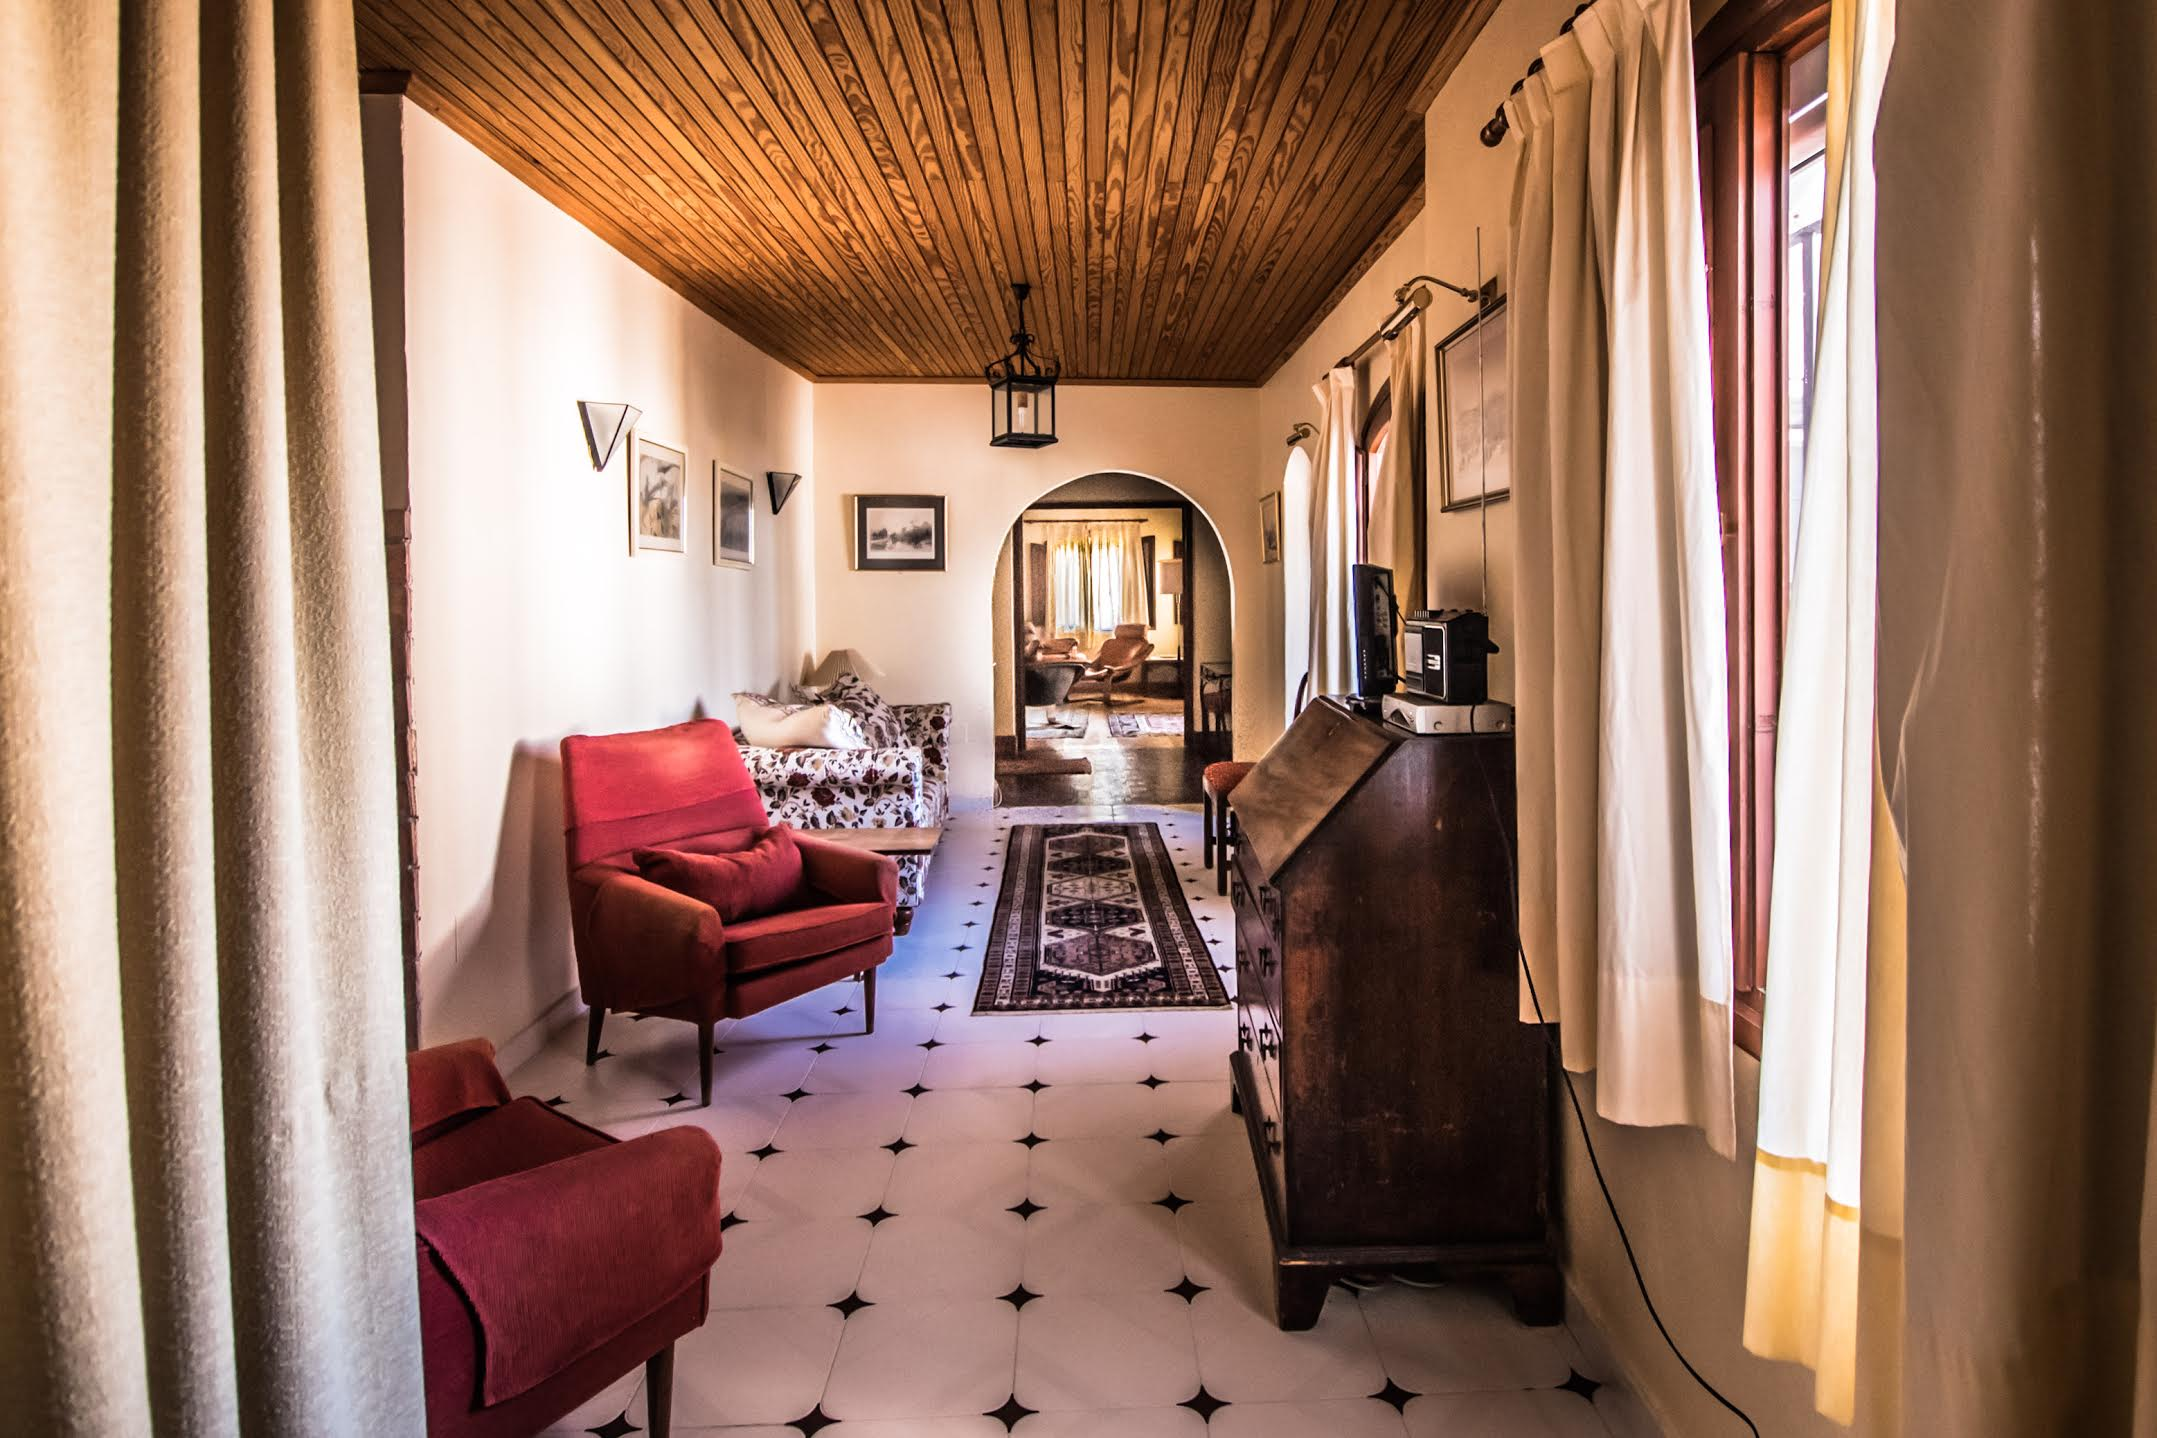 kf942165: Country House or Finca for sale in Bedar